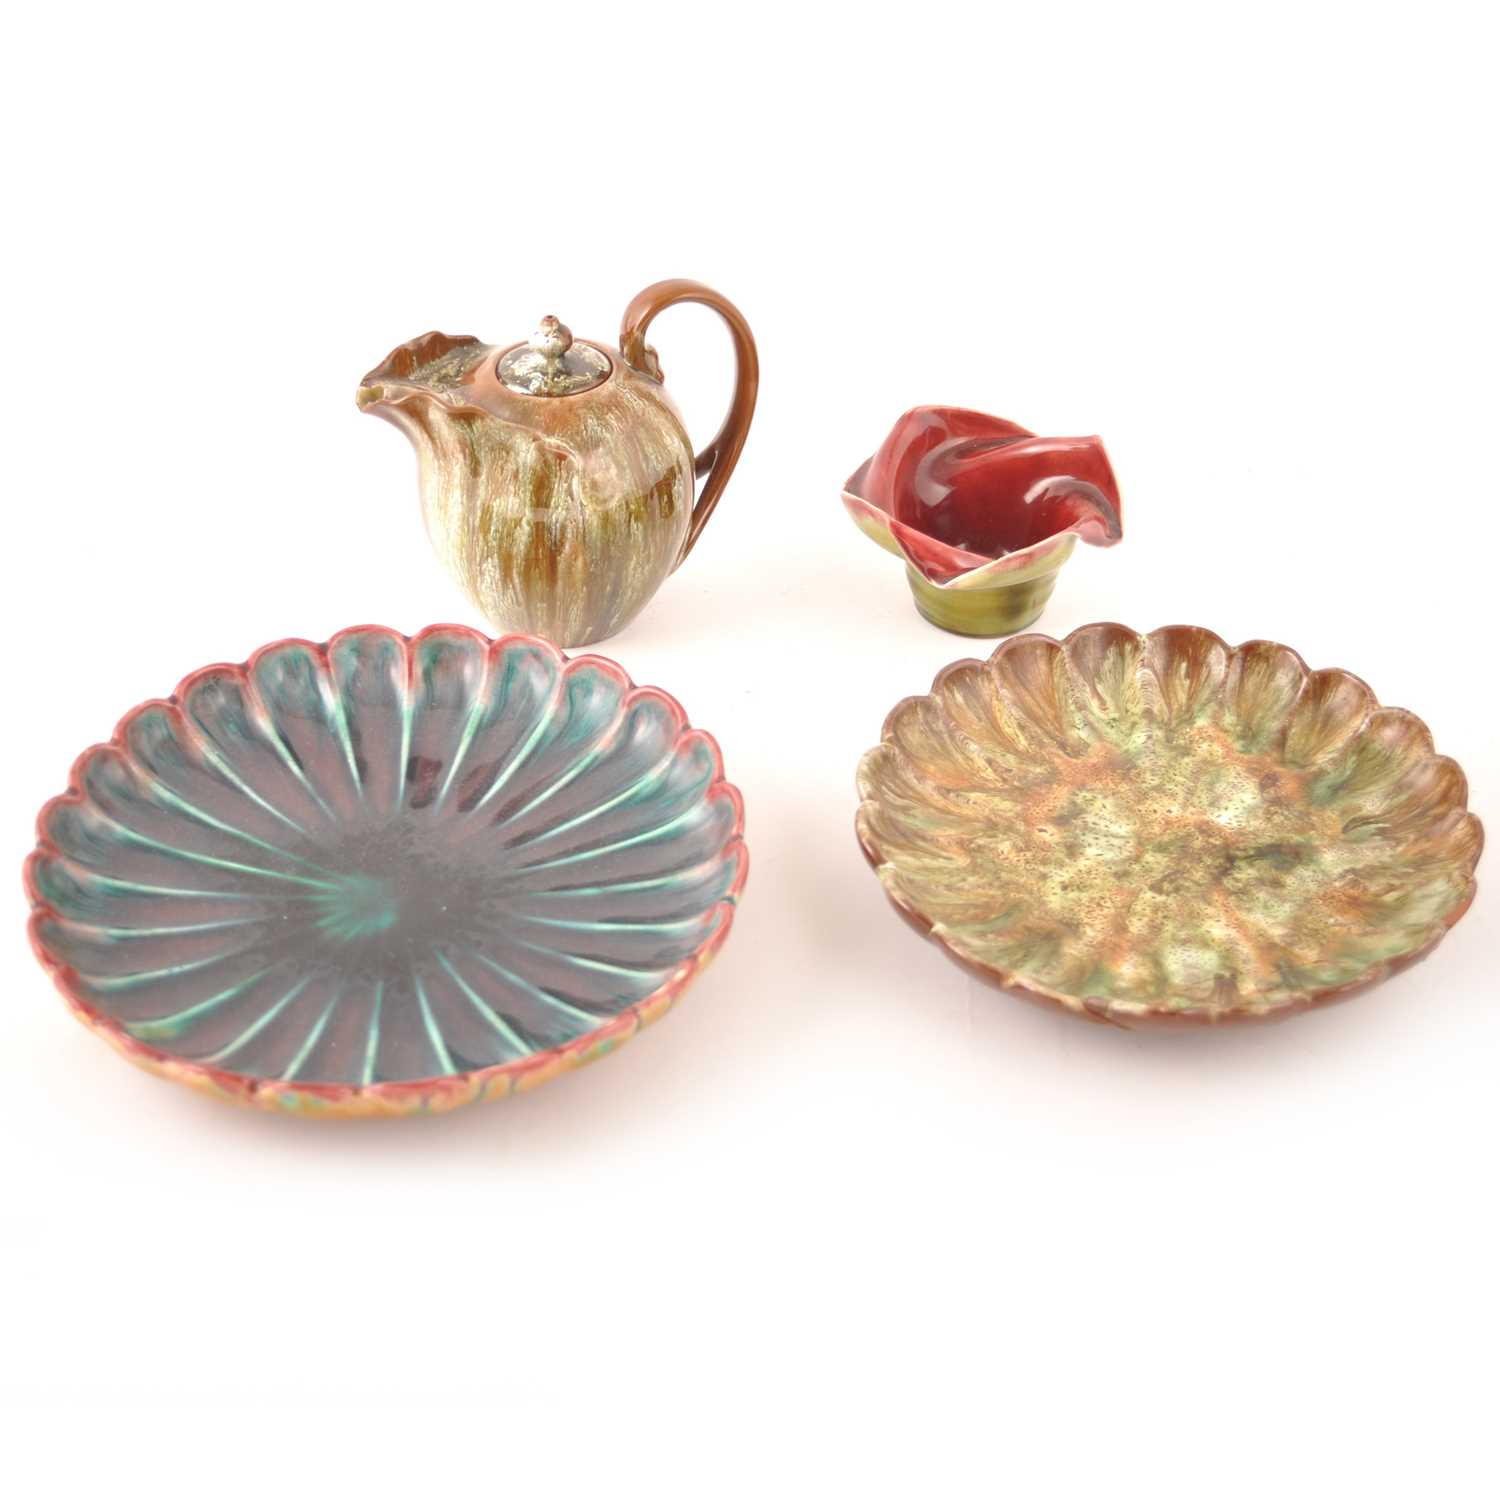 Lot 505-Two lobed dishes designed by Dr Christopher Dresser for Linthorpe Art Pottery, a Sea-form teapot, and another vase